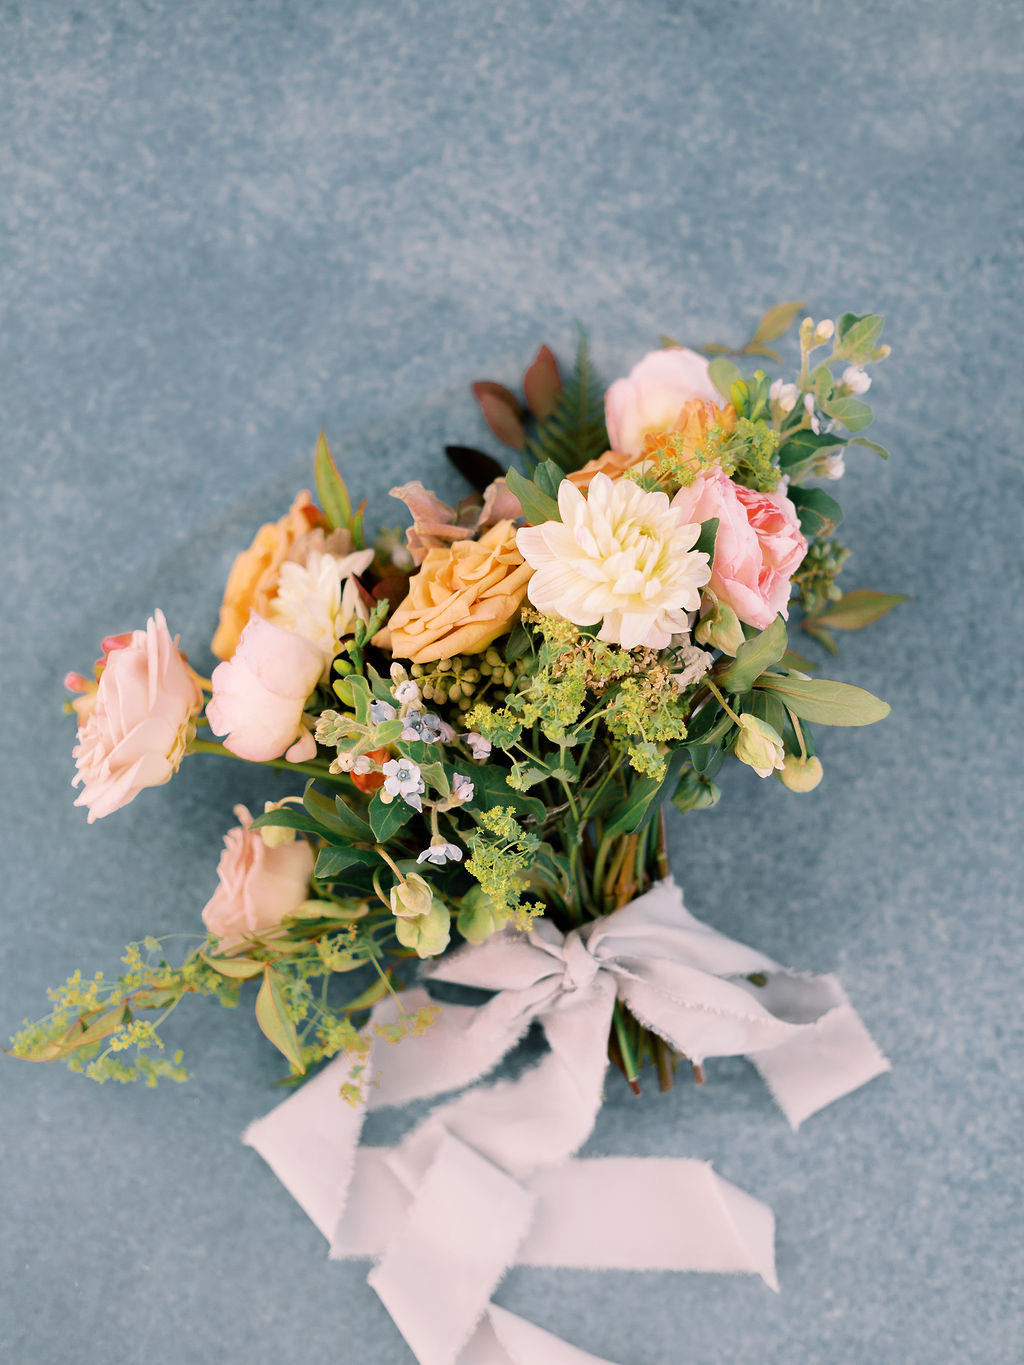 Peach and pink wedding bouquet: Ethereal Wedding Inspiration at The White Sparrow